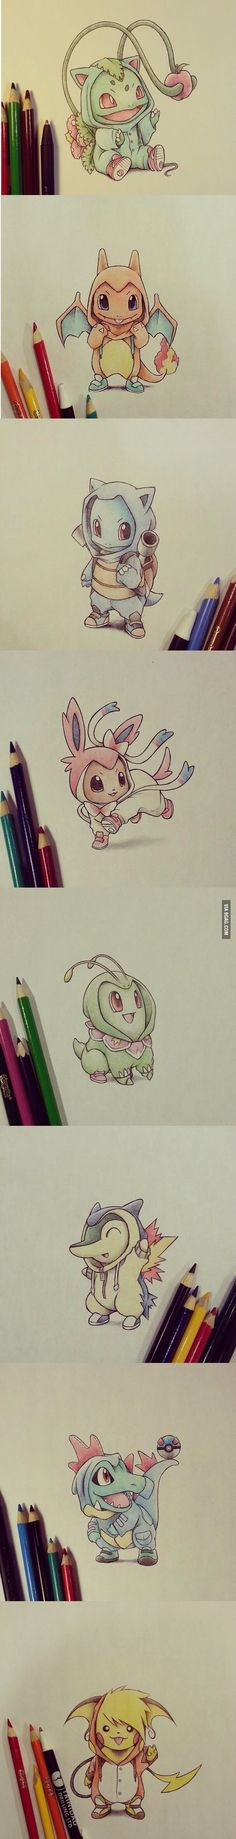 Cute pokemon